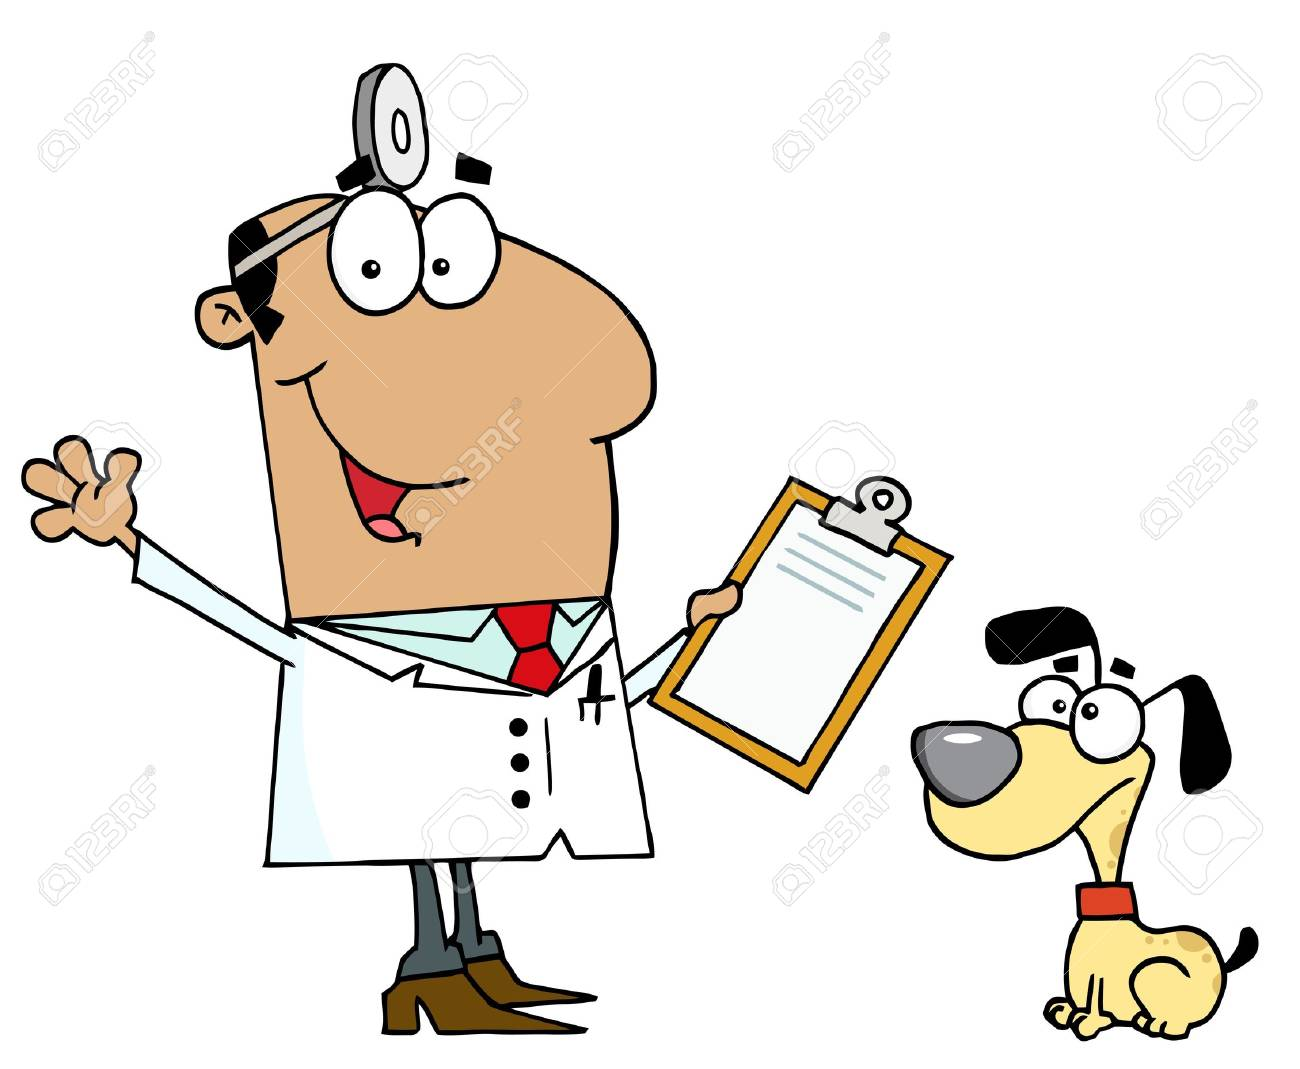 hispanic cartoon dog veterinarian man royalty free cliparts